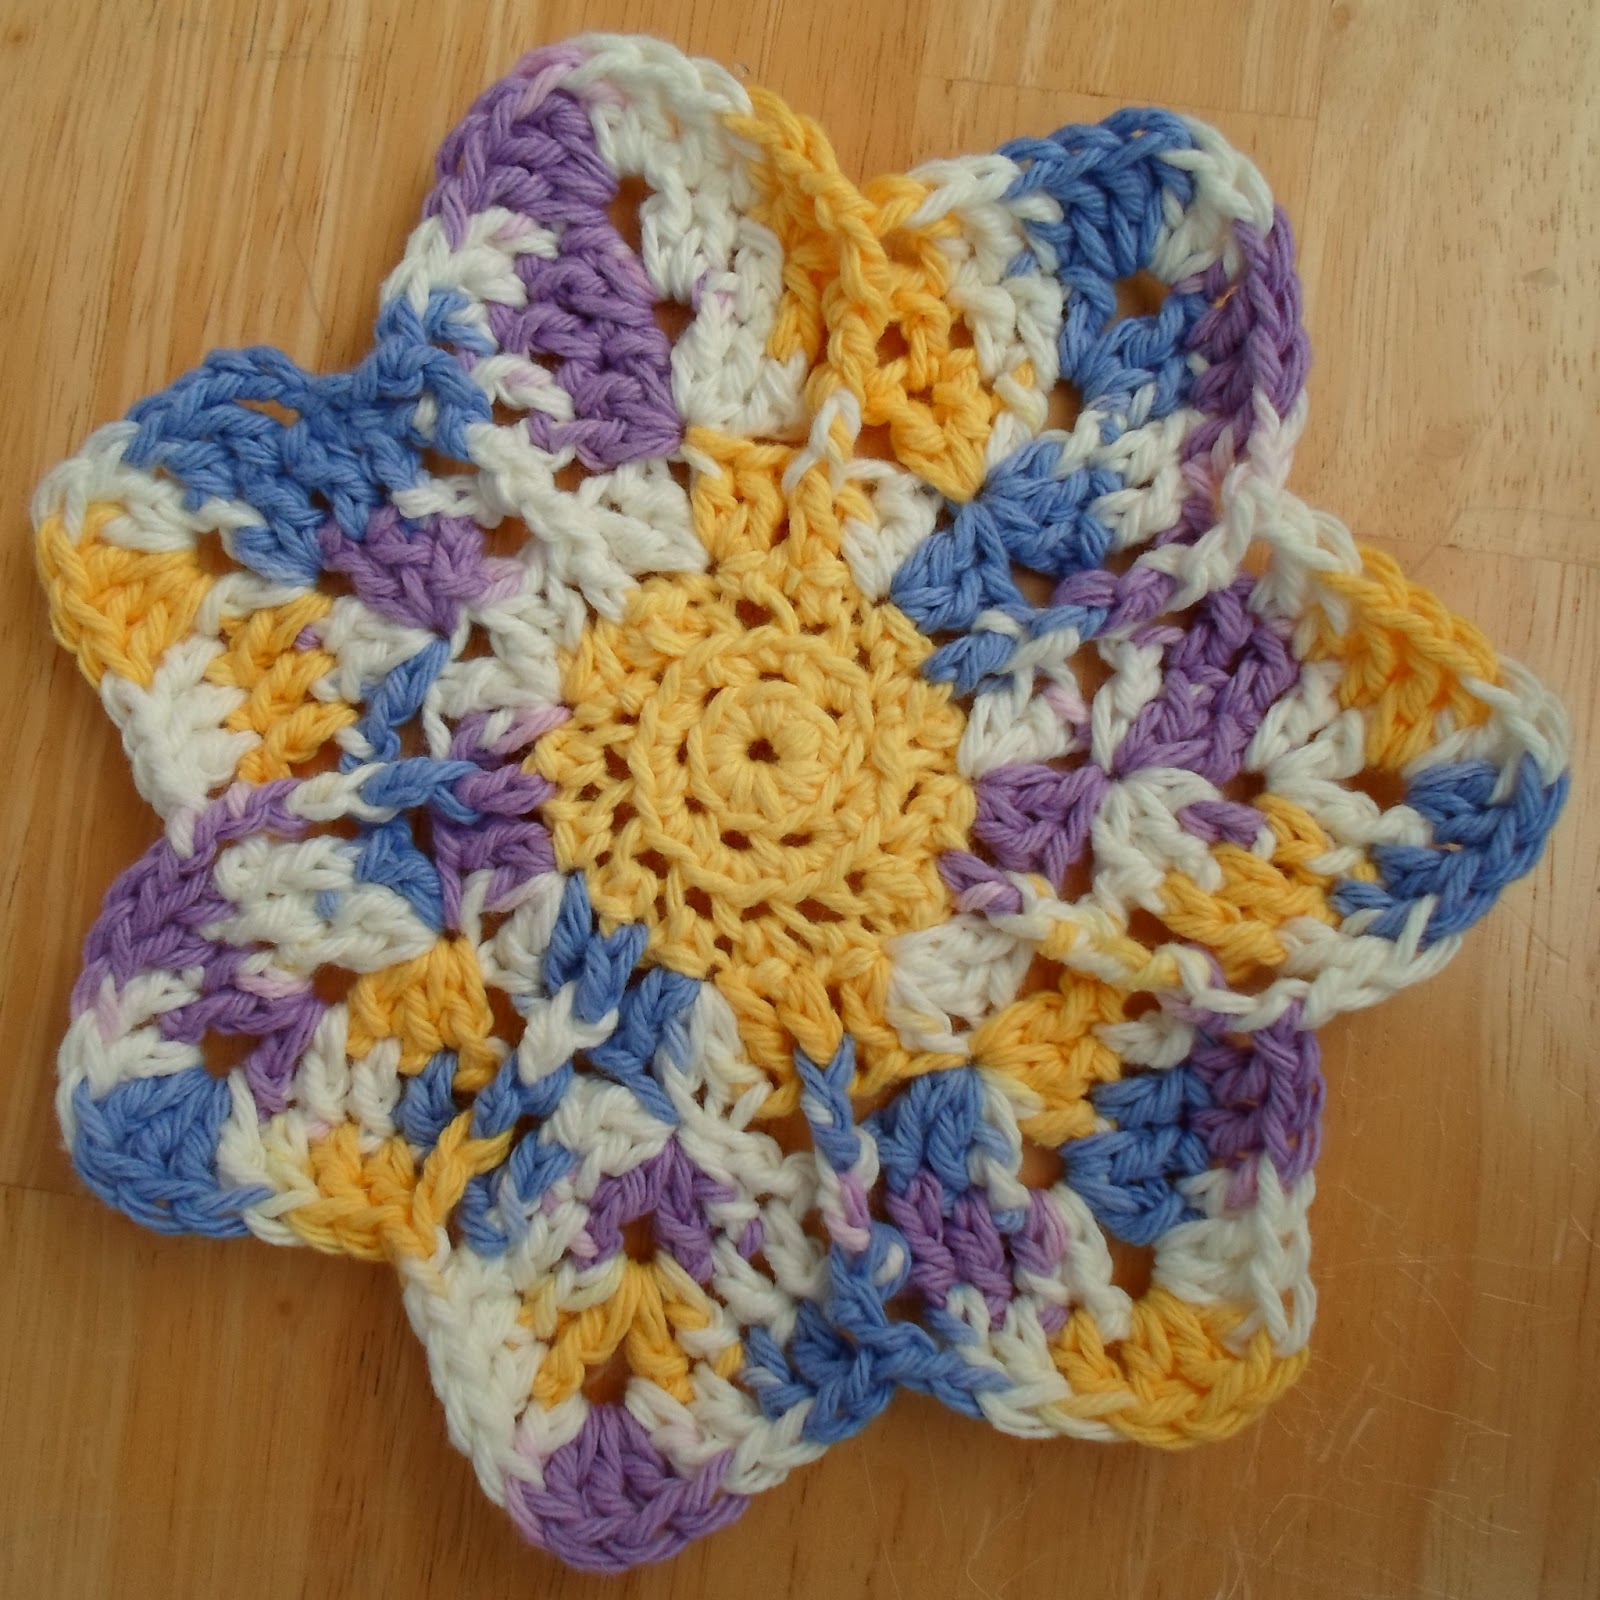 Happier Than A Pig In Mud: Crochet Spring Flower Dishcloth